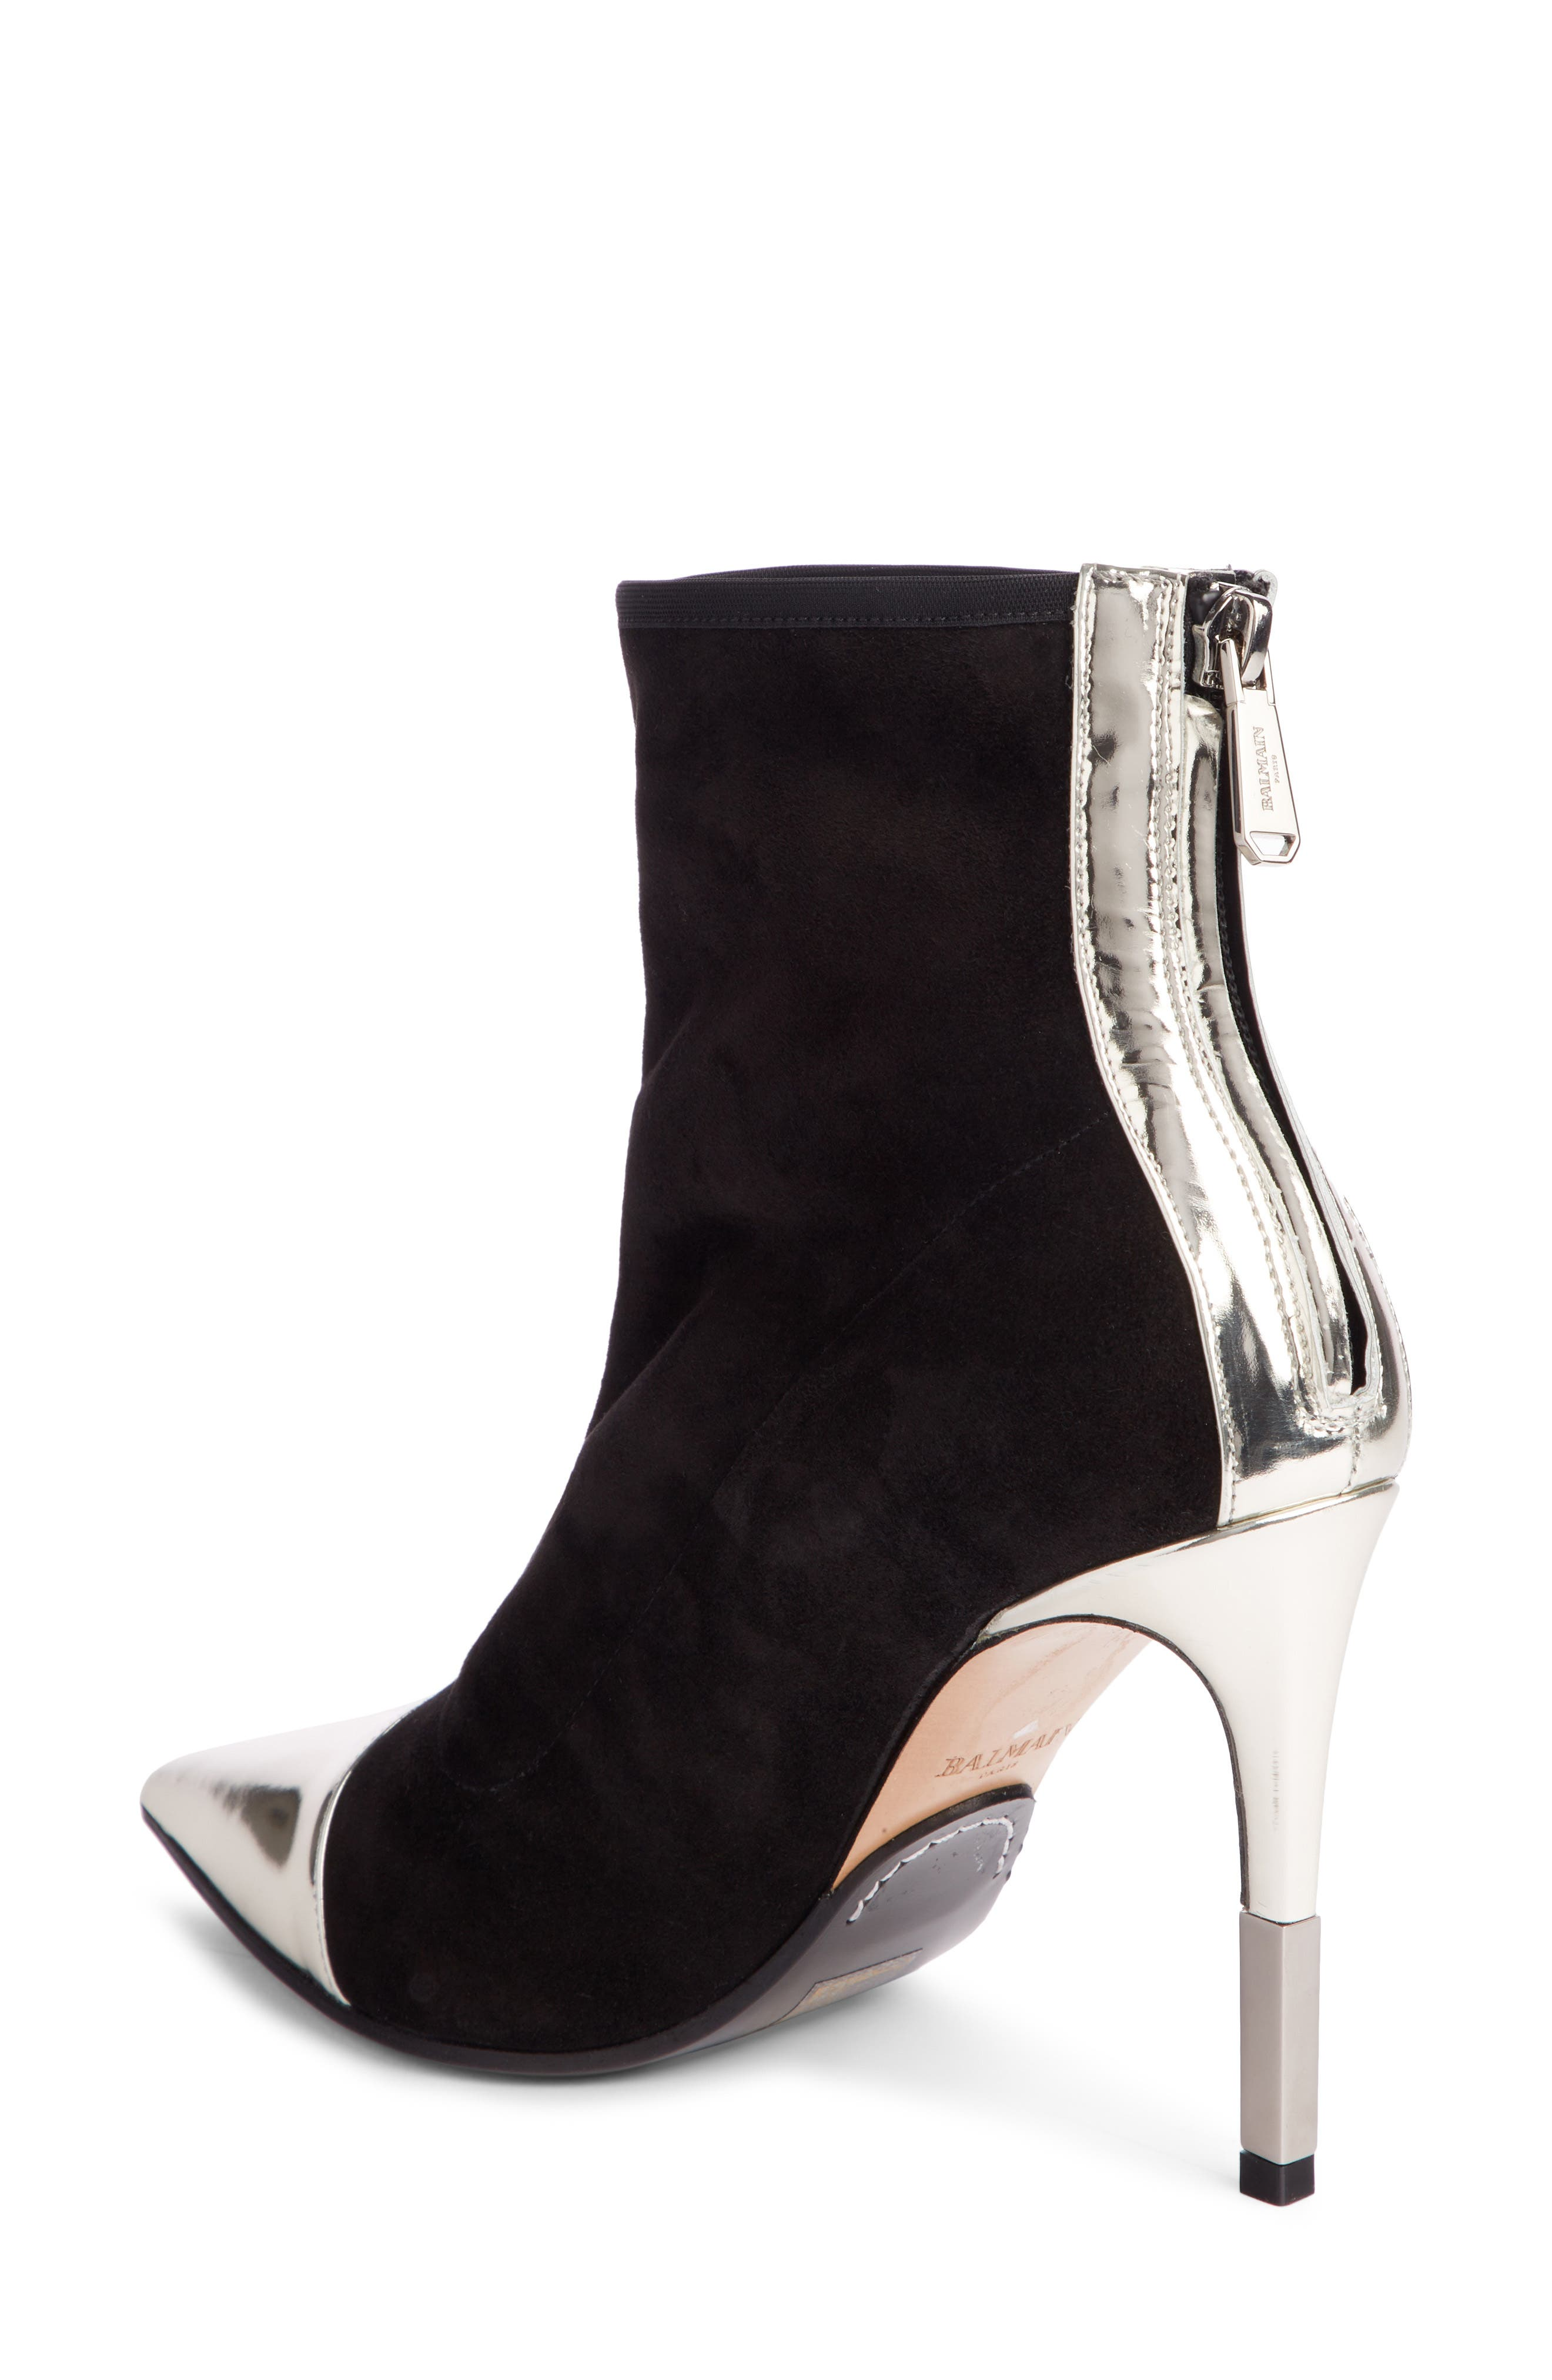 Blair Pointy Toe Bootie,                             Alternate thumbnail 2, color,                             Black/ Silver